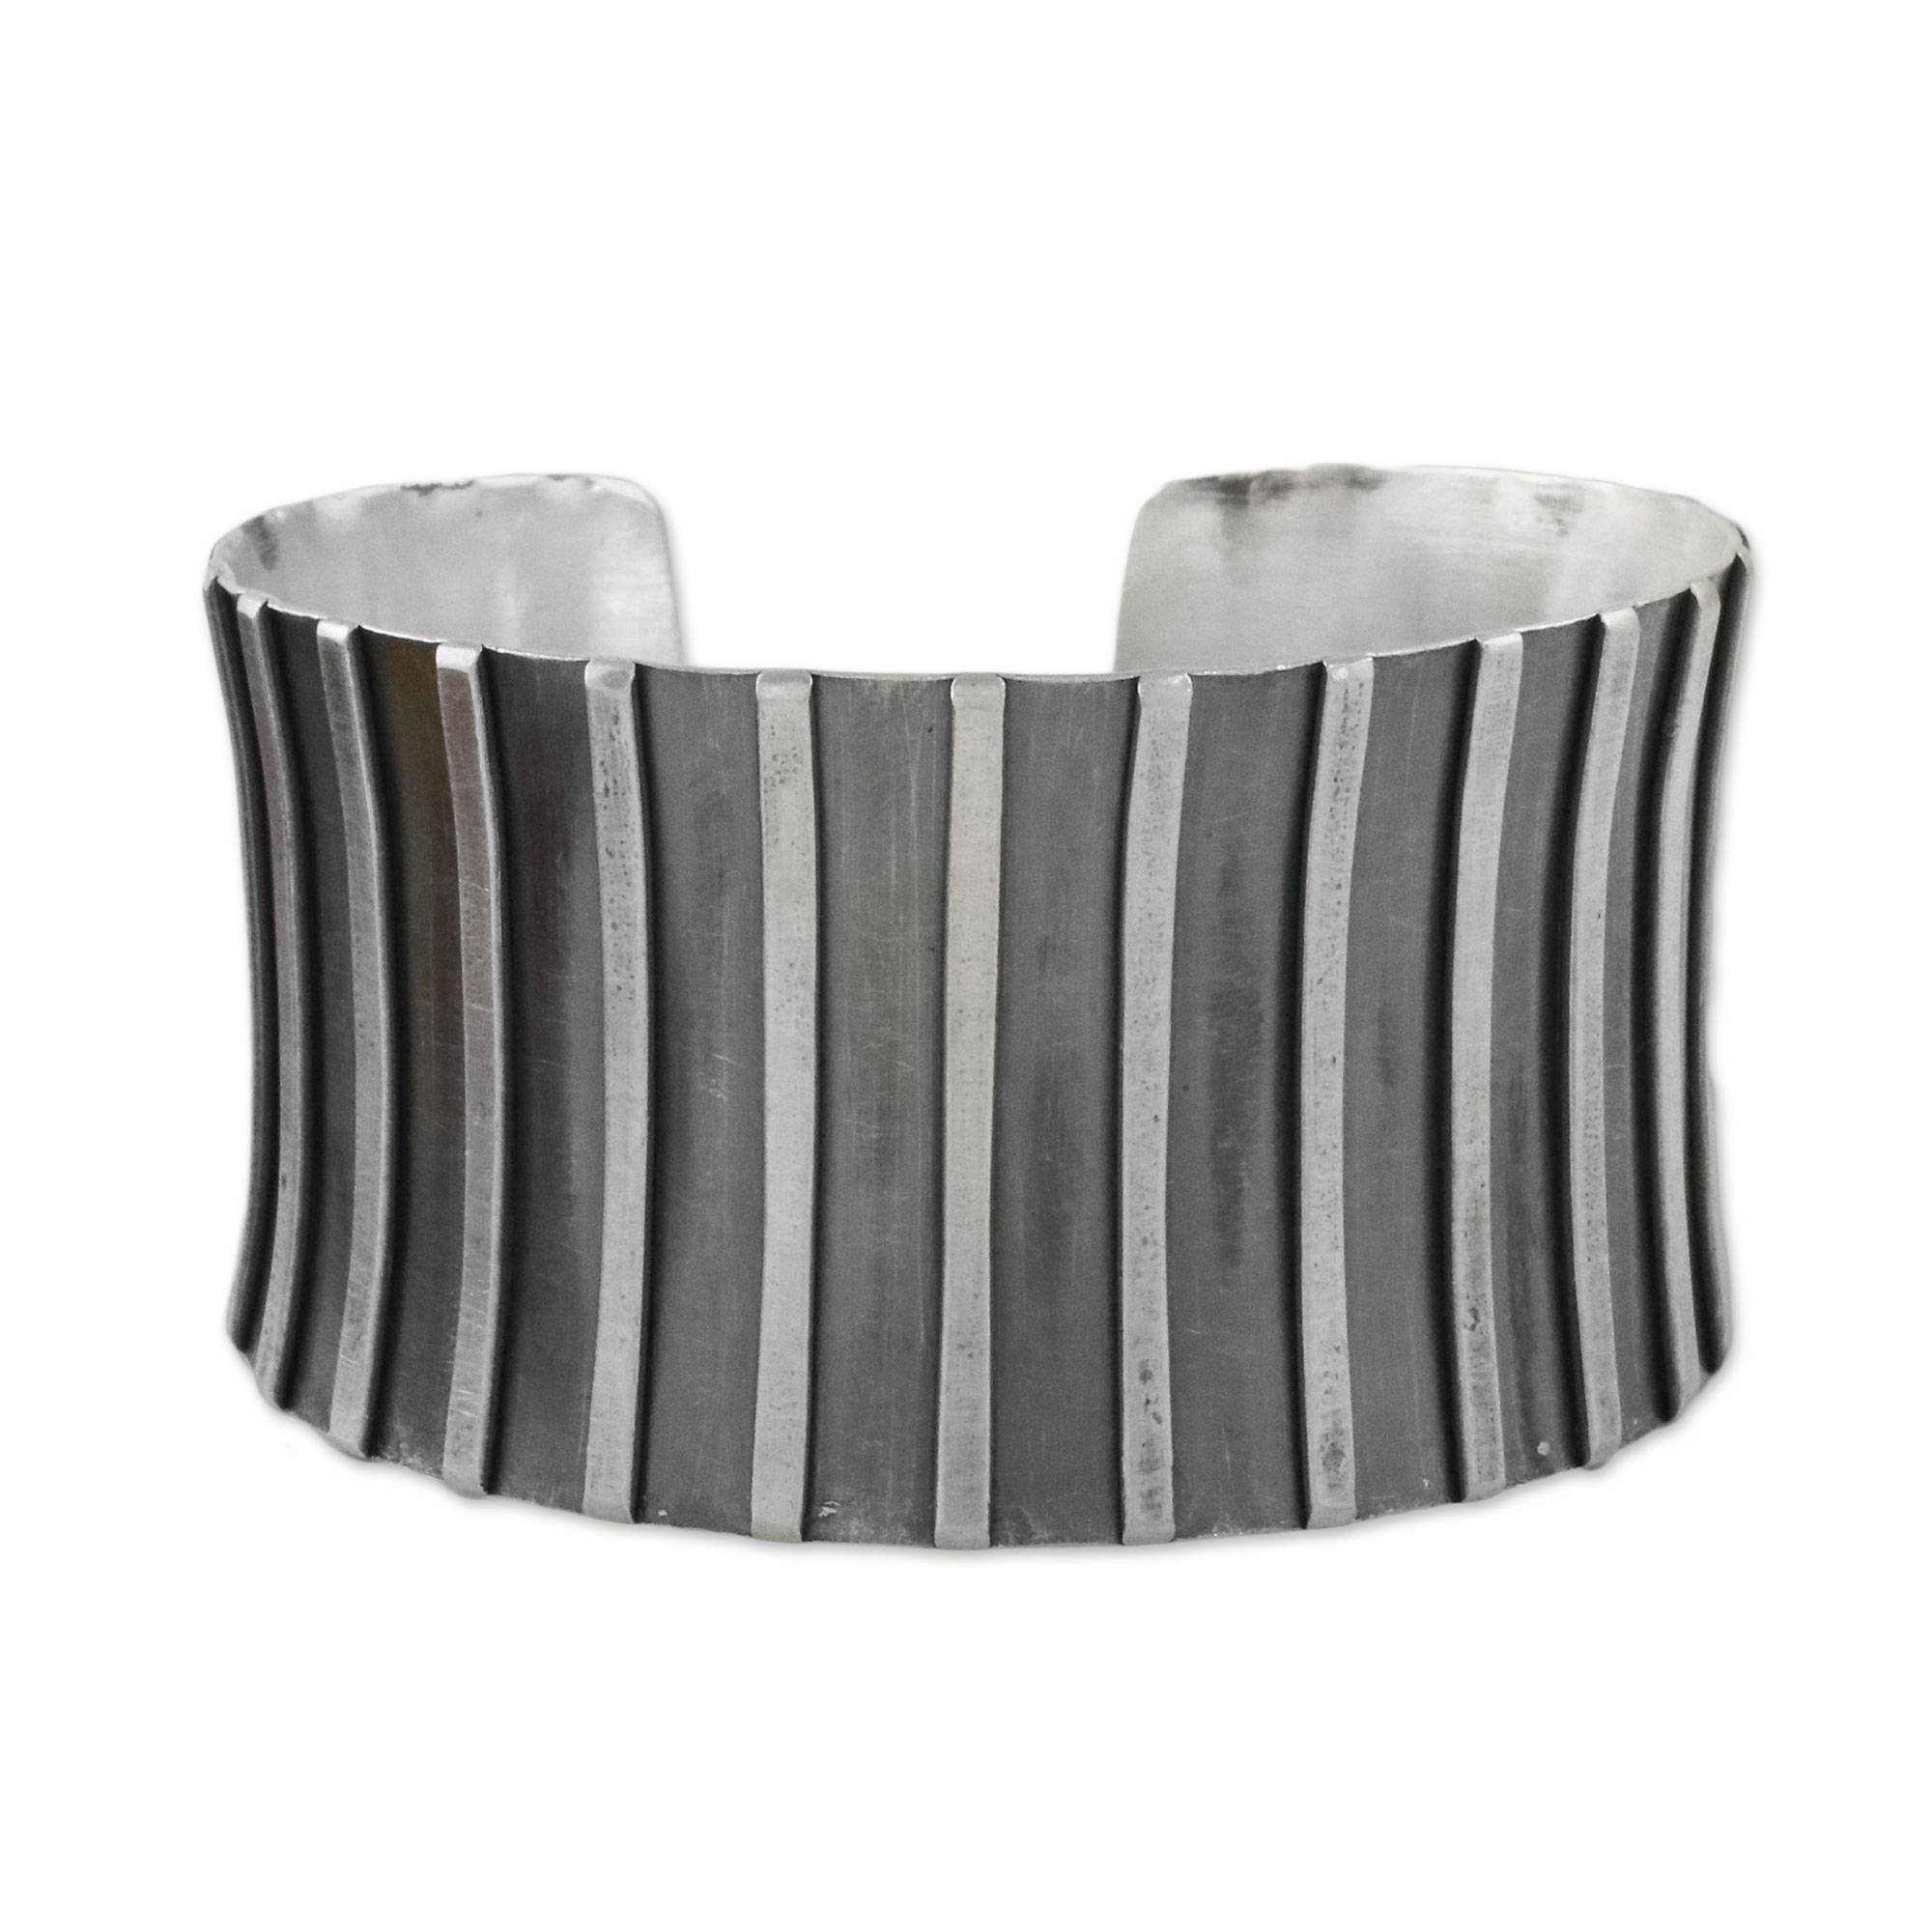 NOVICA .925 Sterling Silver Cuff Bracelet 'Contemporary Charm'